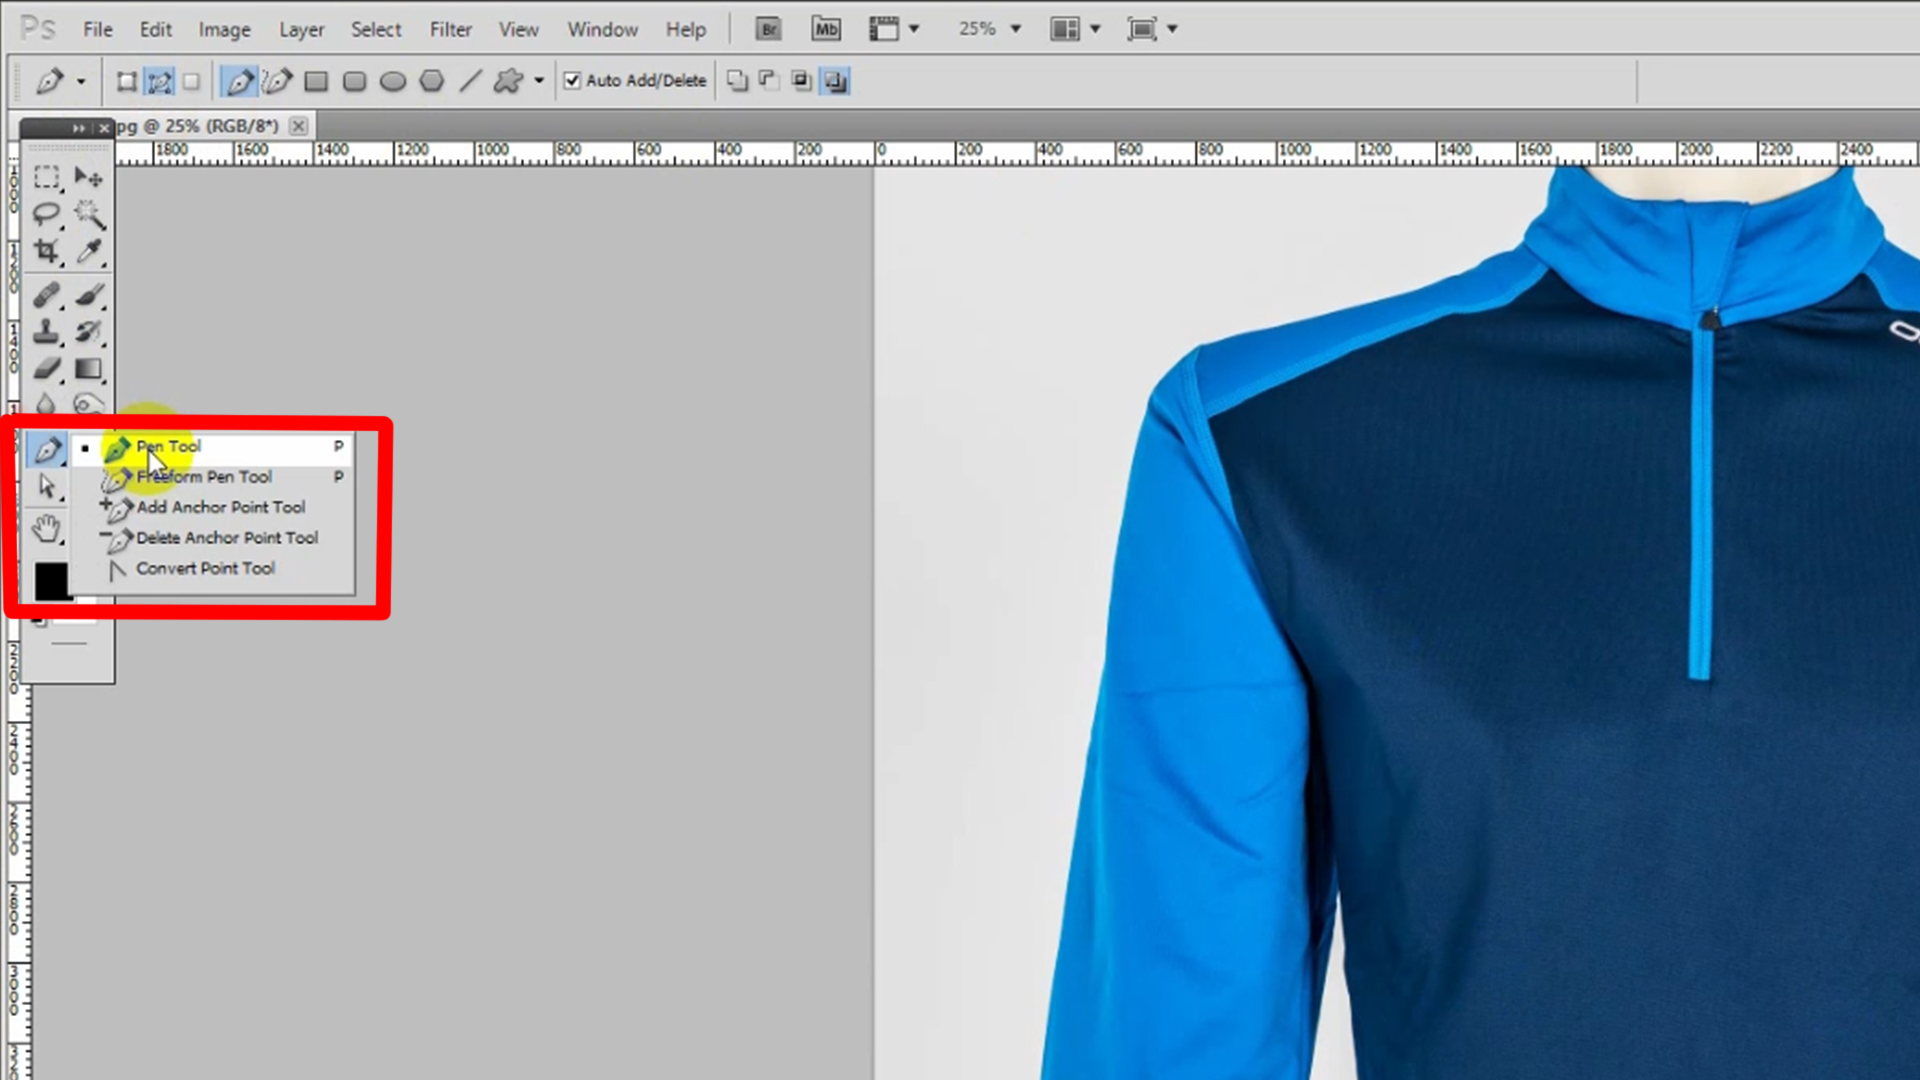 Select Pen Tool from the left toolbar